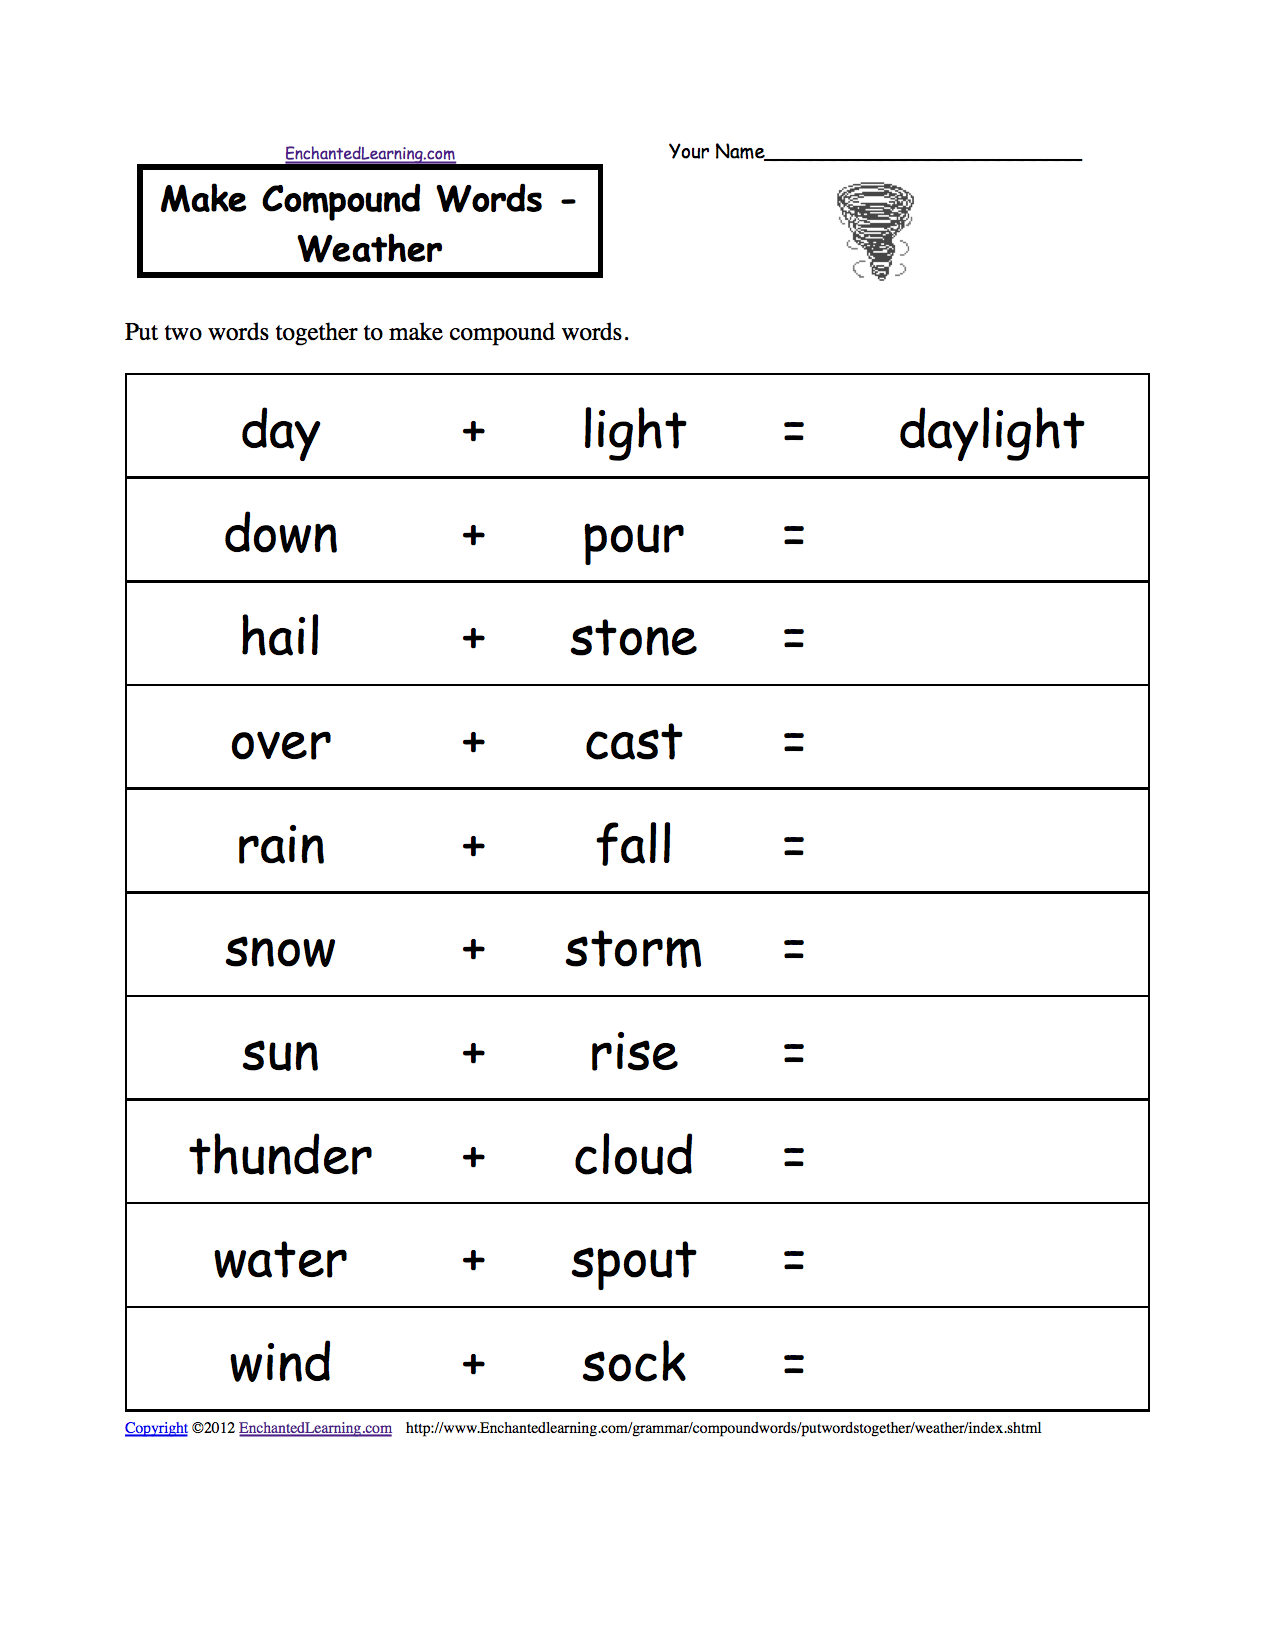 Printables Free Printable Weather Worksheets weather related activities at enchantedlearning com make compound words printable worksheet